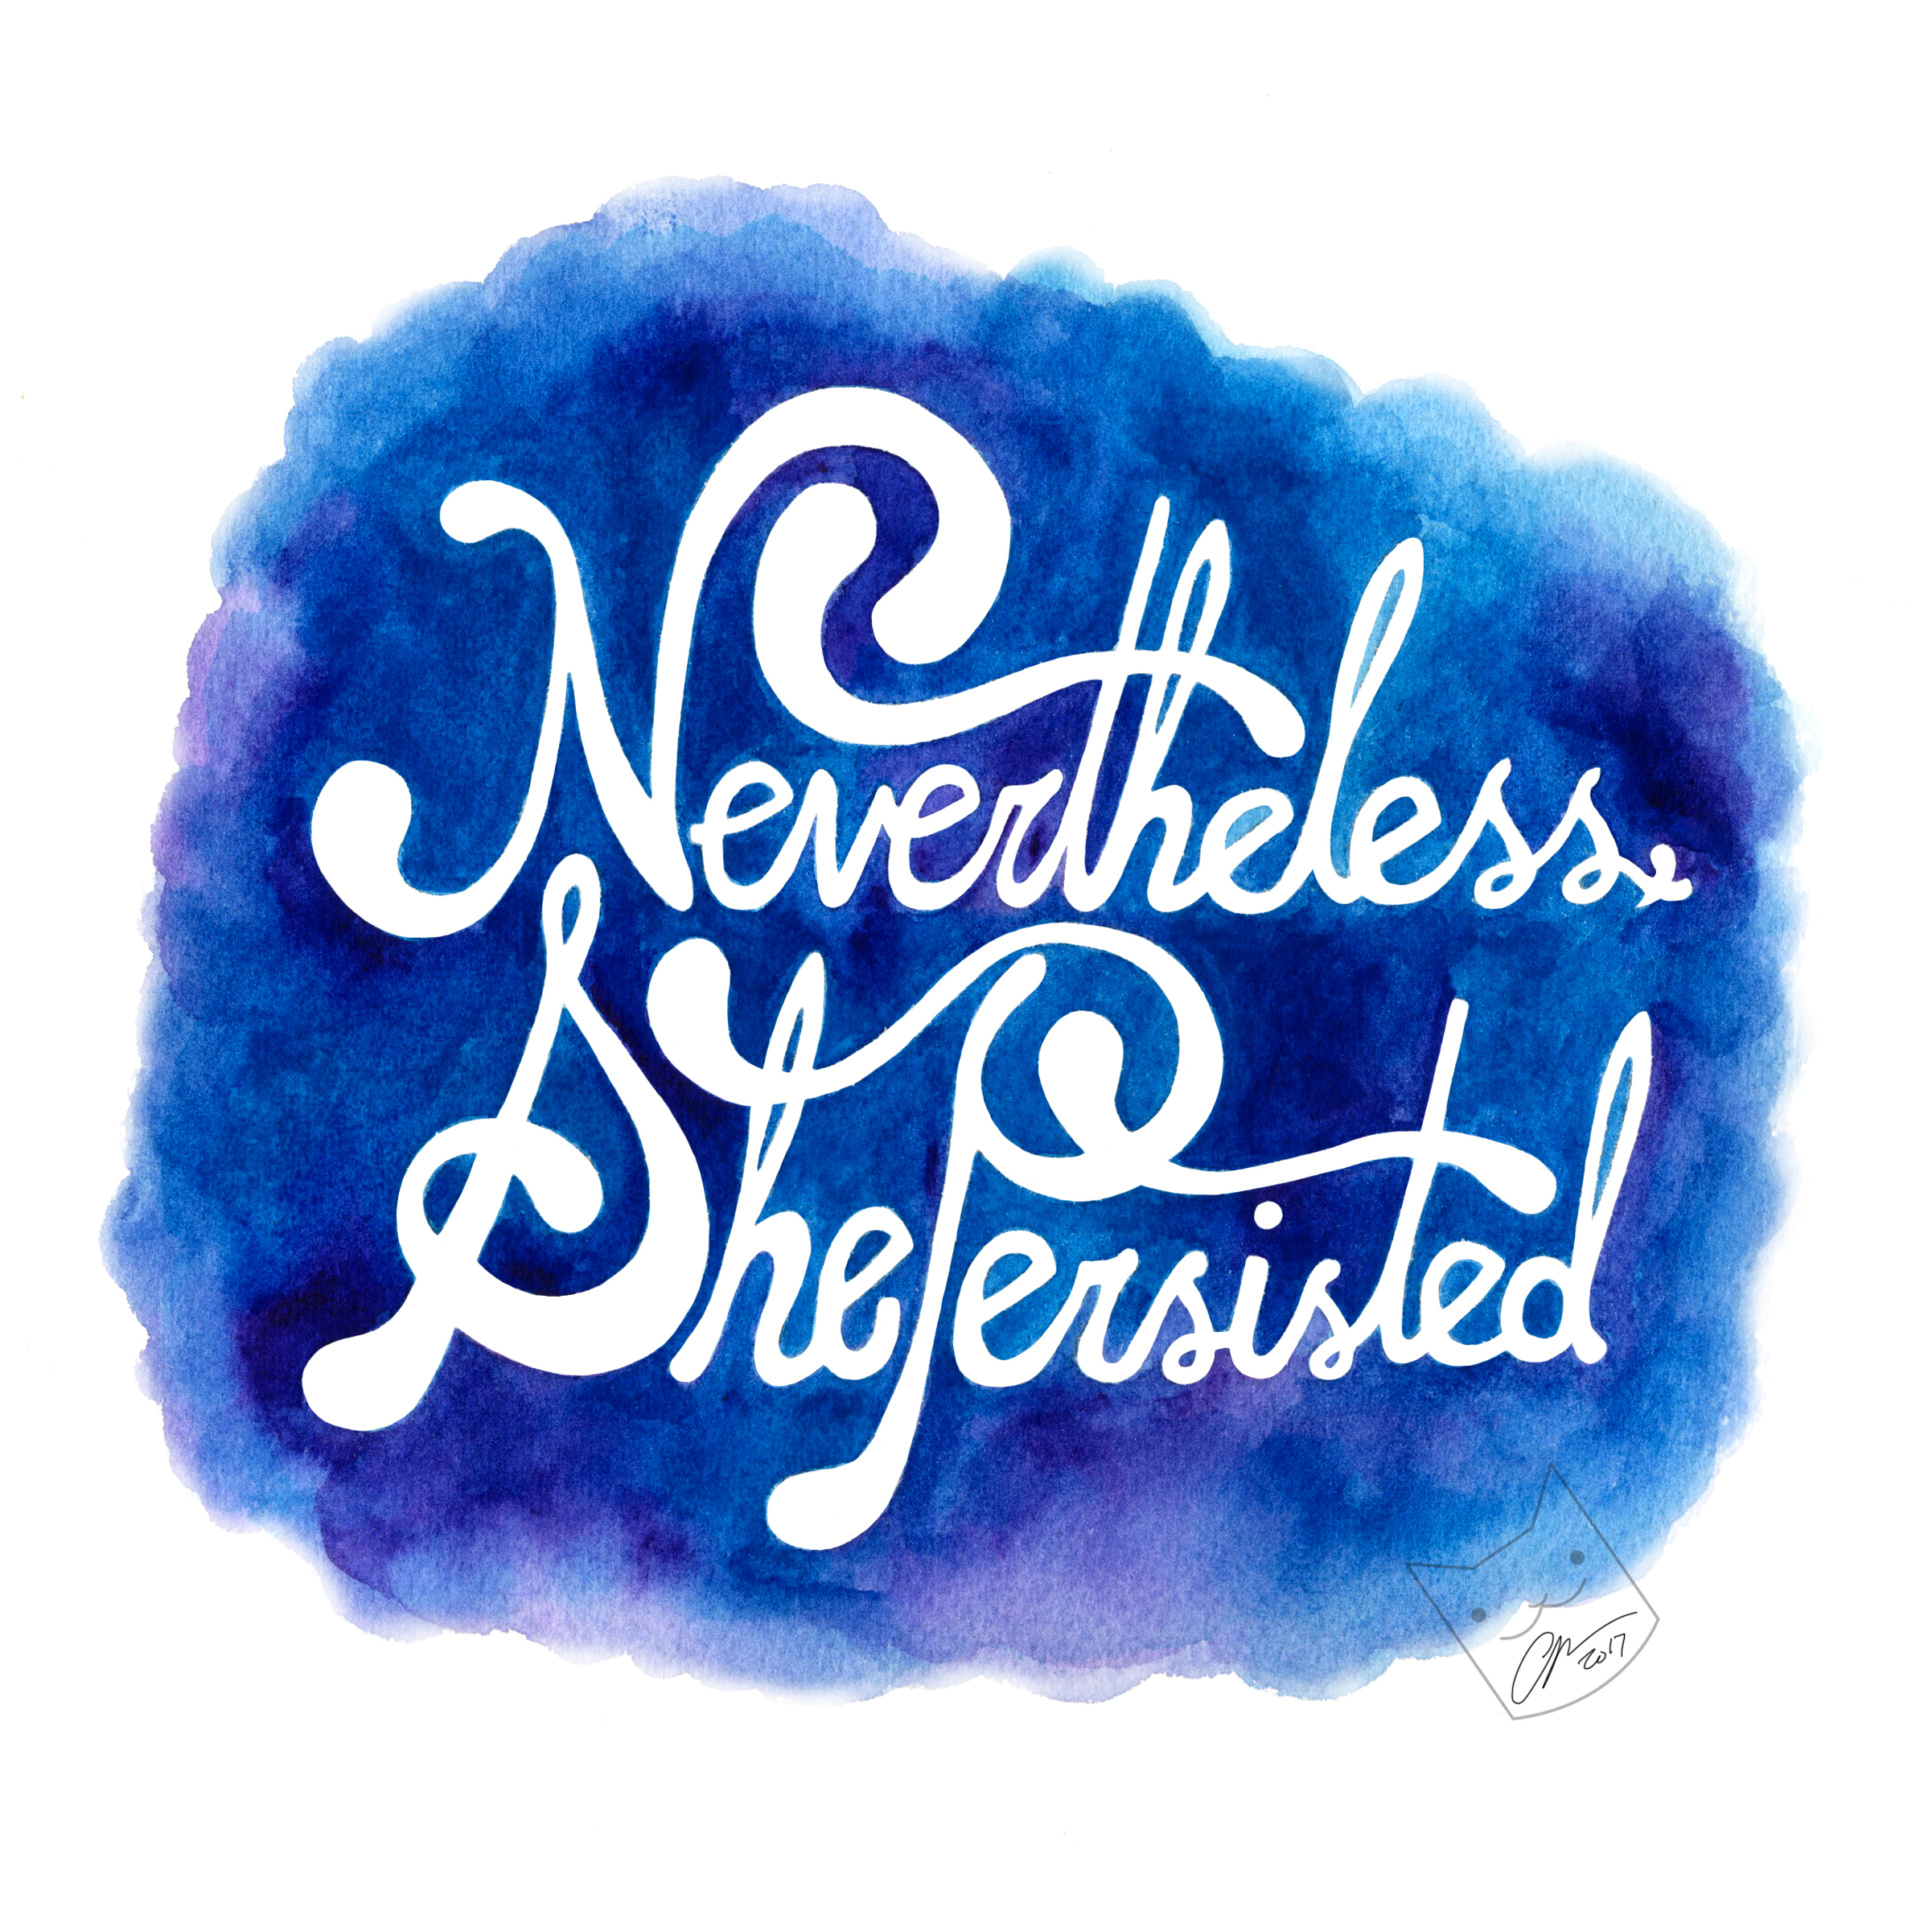 nevertheless she persisted.jpg